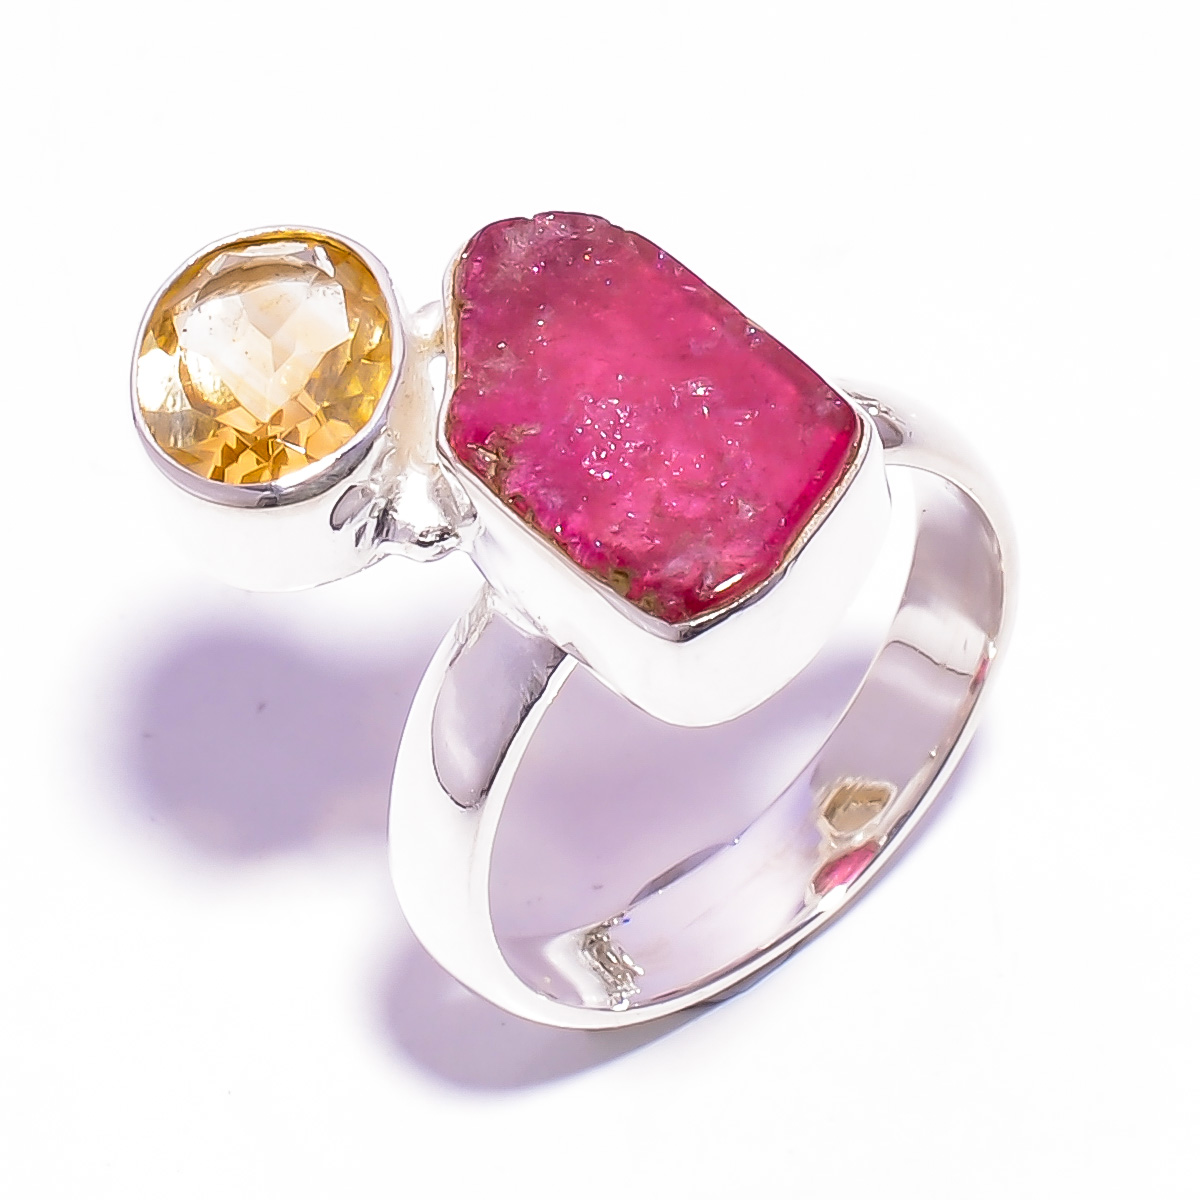 Raw Pink Tourmaline, Citrine Gemstone 925 Sterling Silver Ring Size US 8